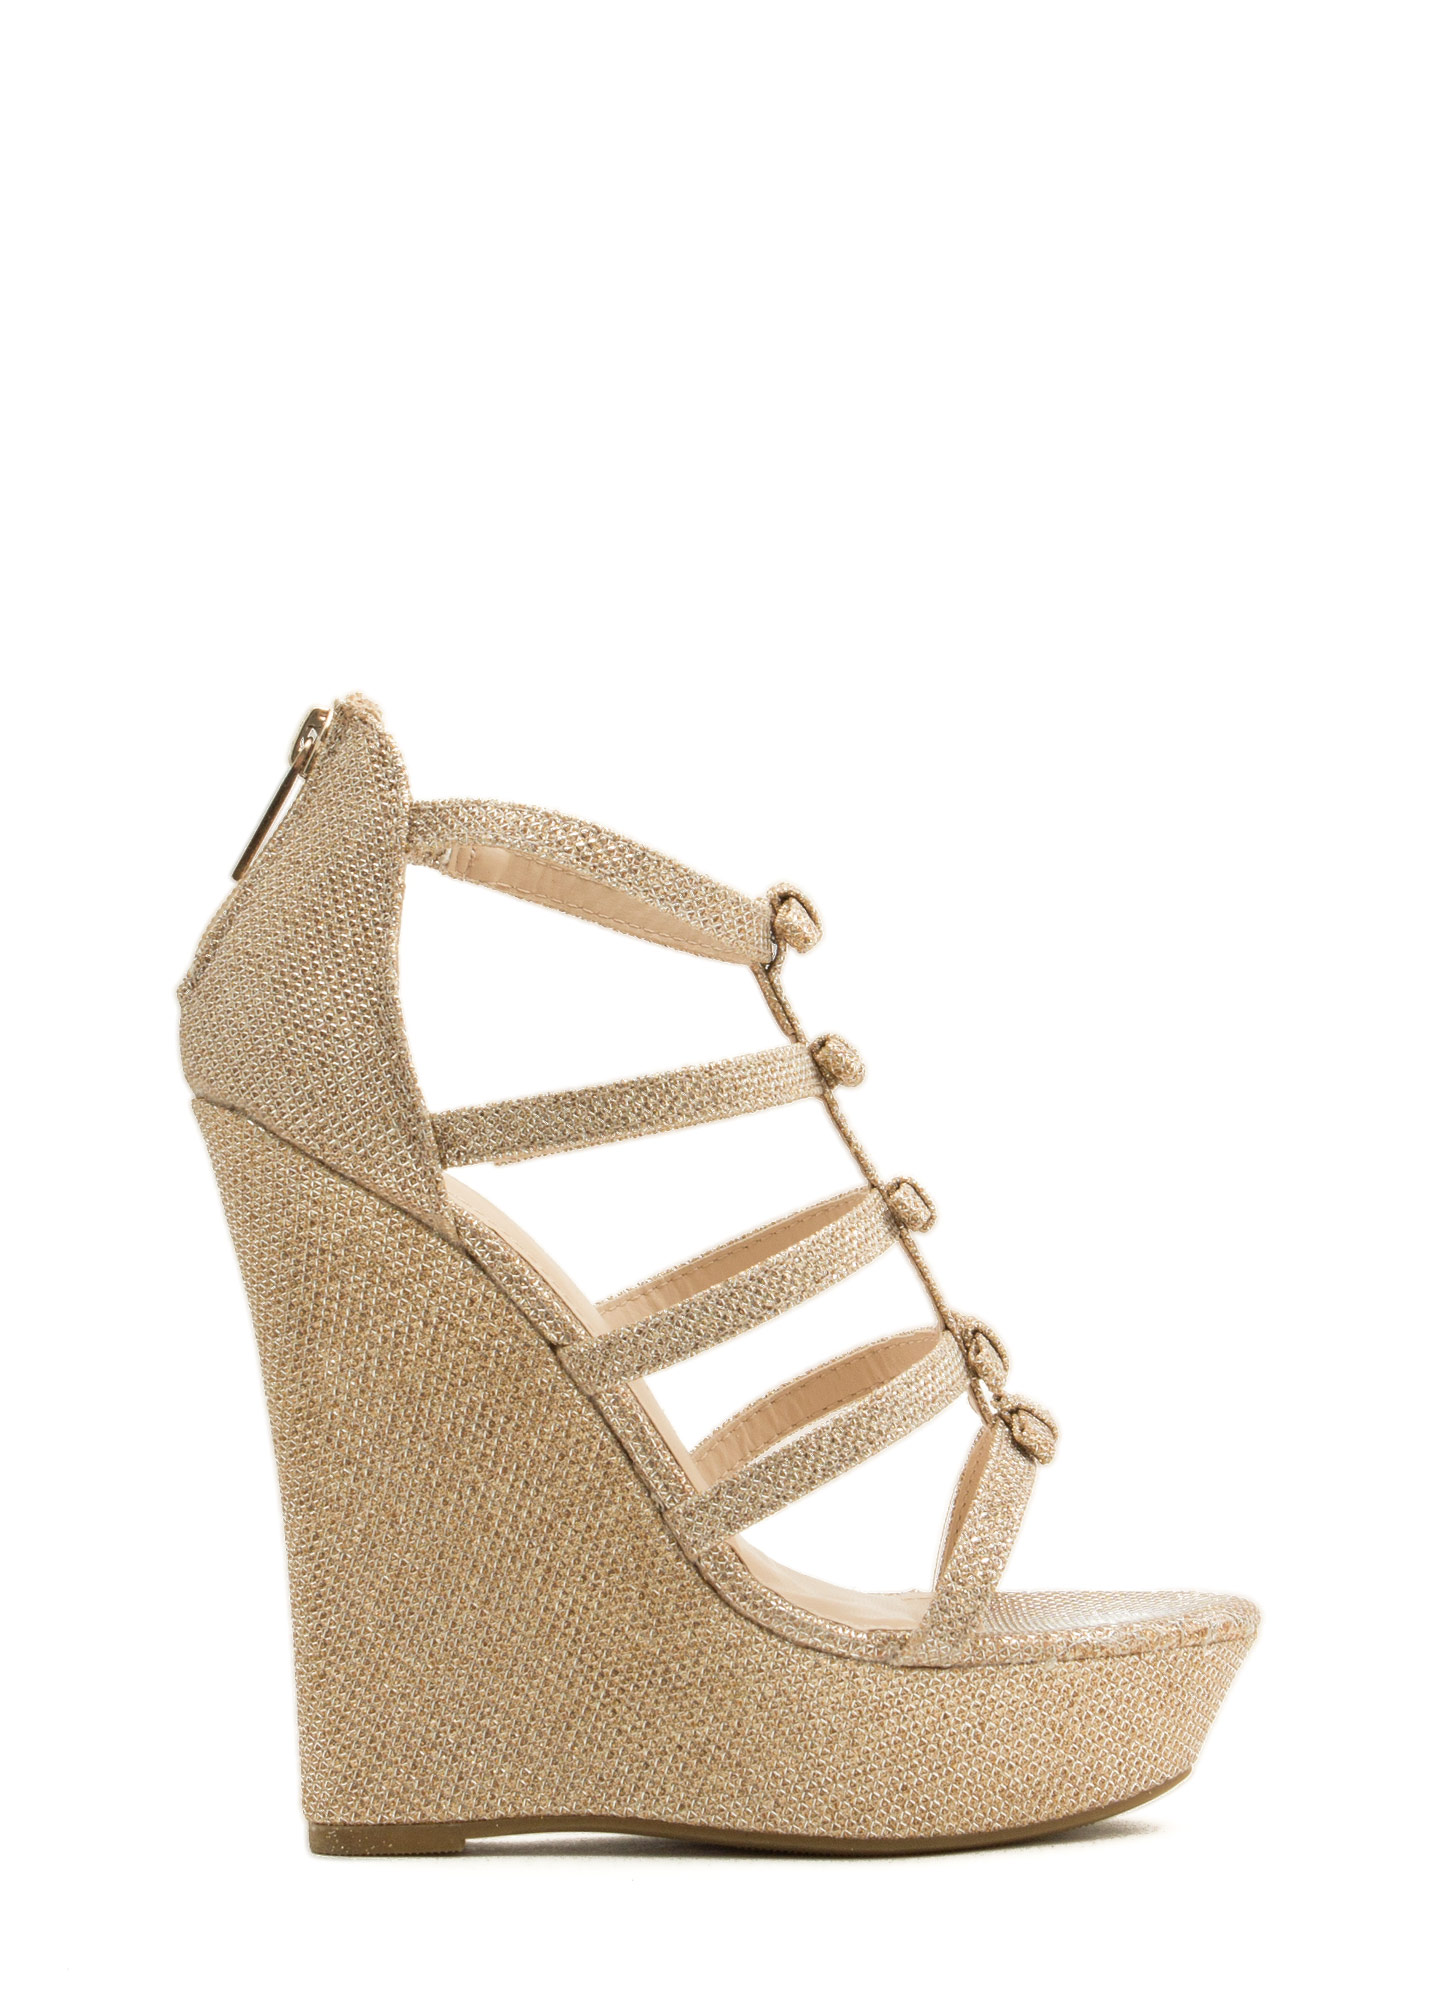 Laddered Bows Platform Wedges ROSEGOLD